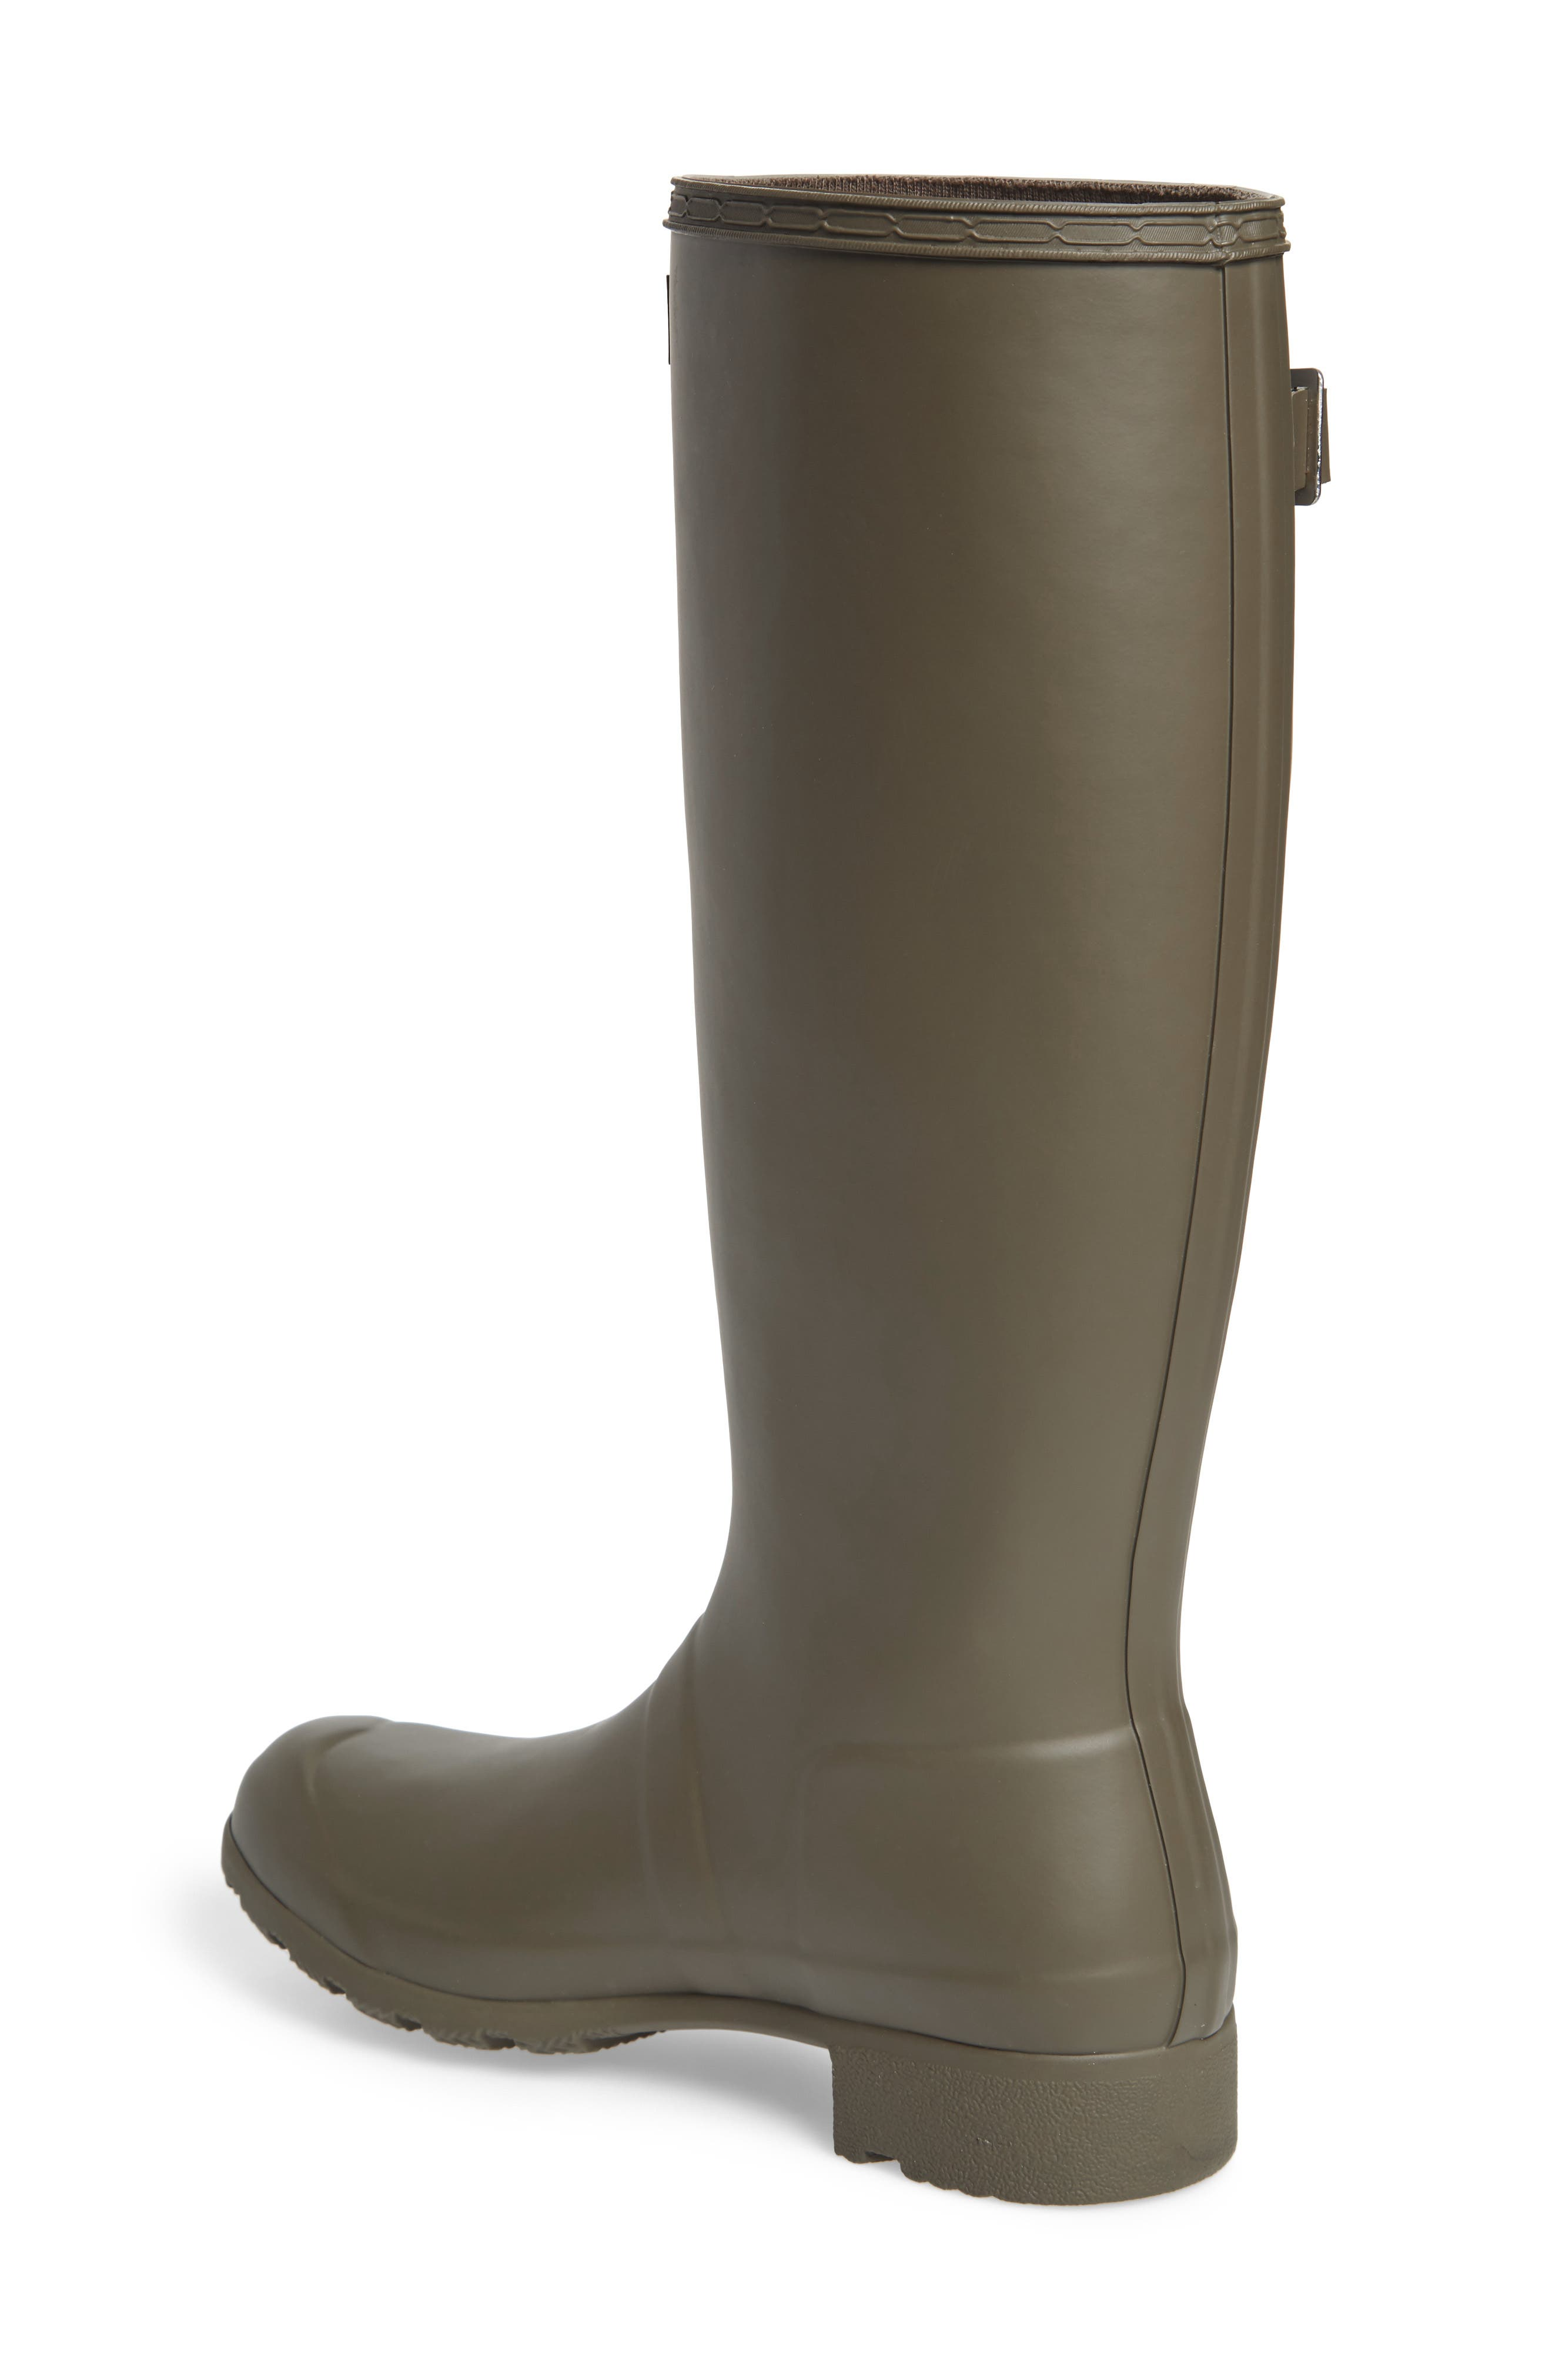 'Tour' Packable Rain Boot,                             Alternate thumbnail 28, color,